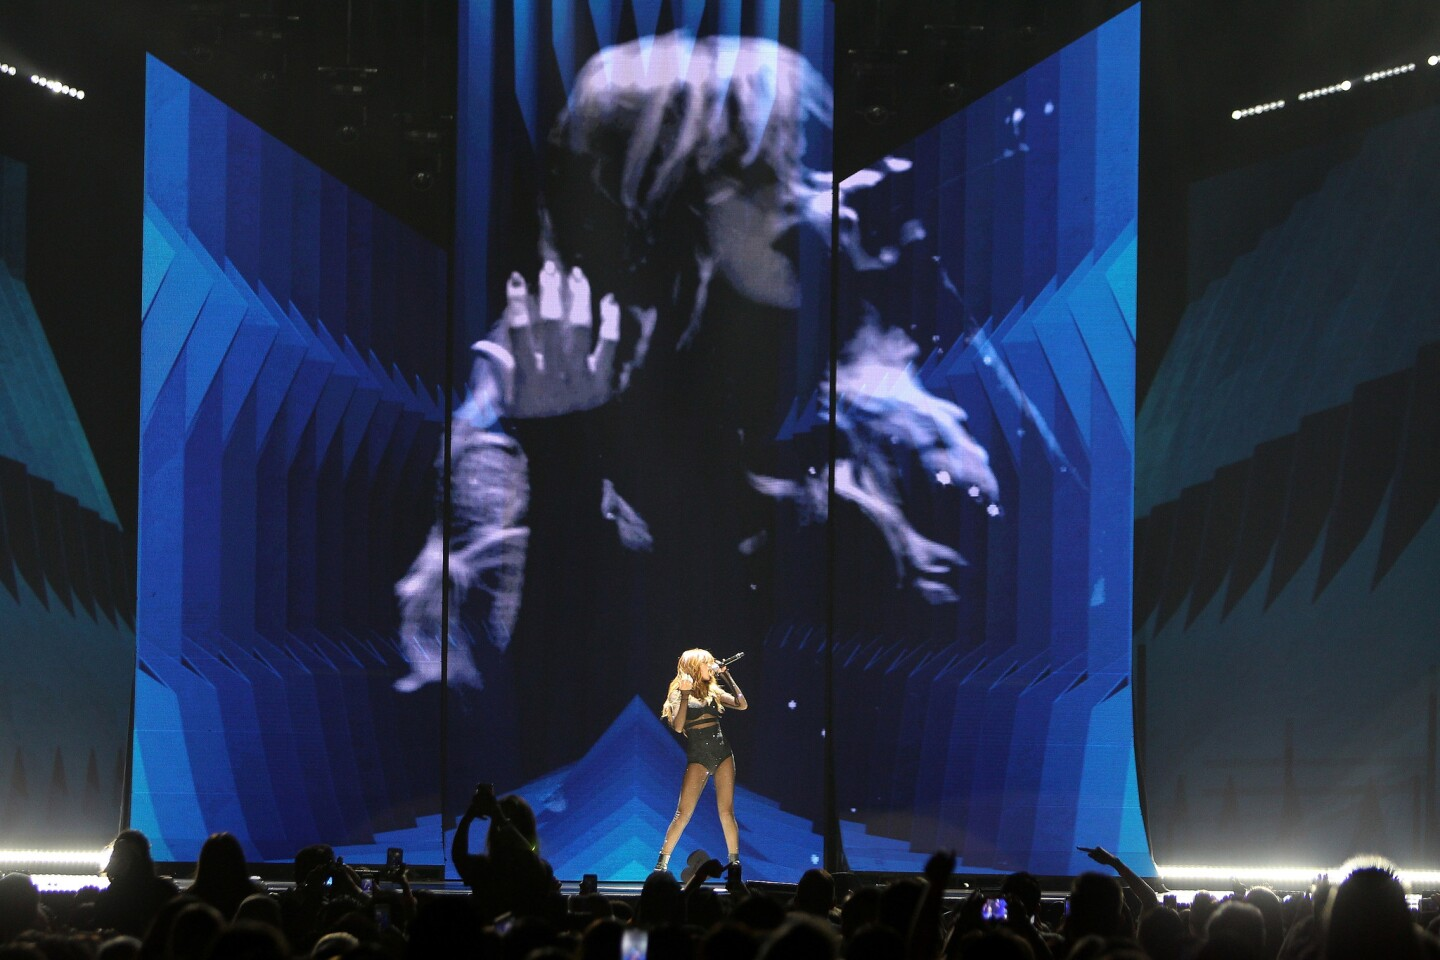 """Selena Gomez performs onstage during her """"Revival Tour"""" at Honda Center on July 09, 2016 in Anaheim, CA. (Photo by © Art. Garcia/DDPixels.com)"""